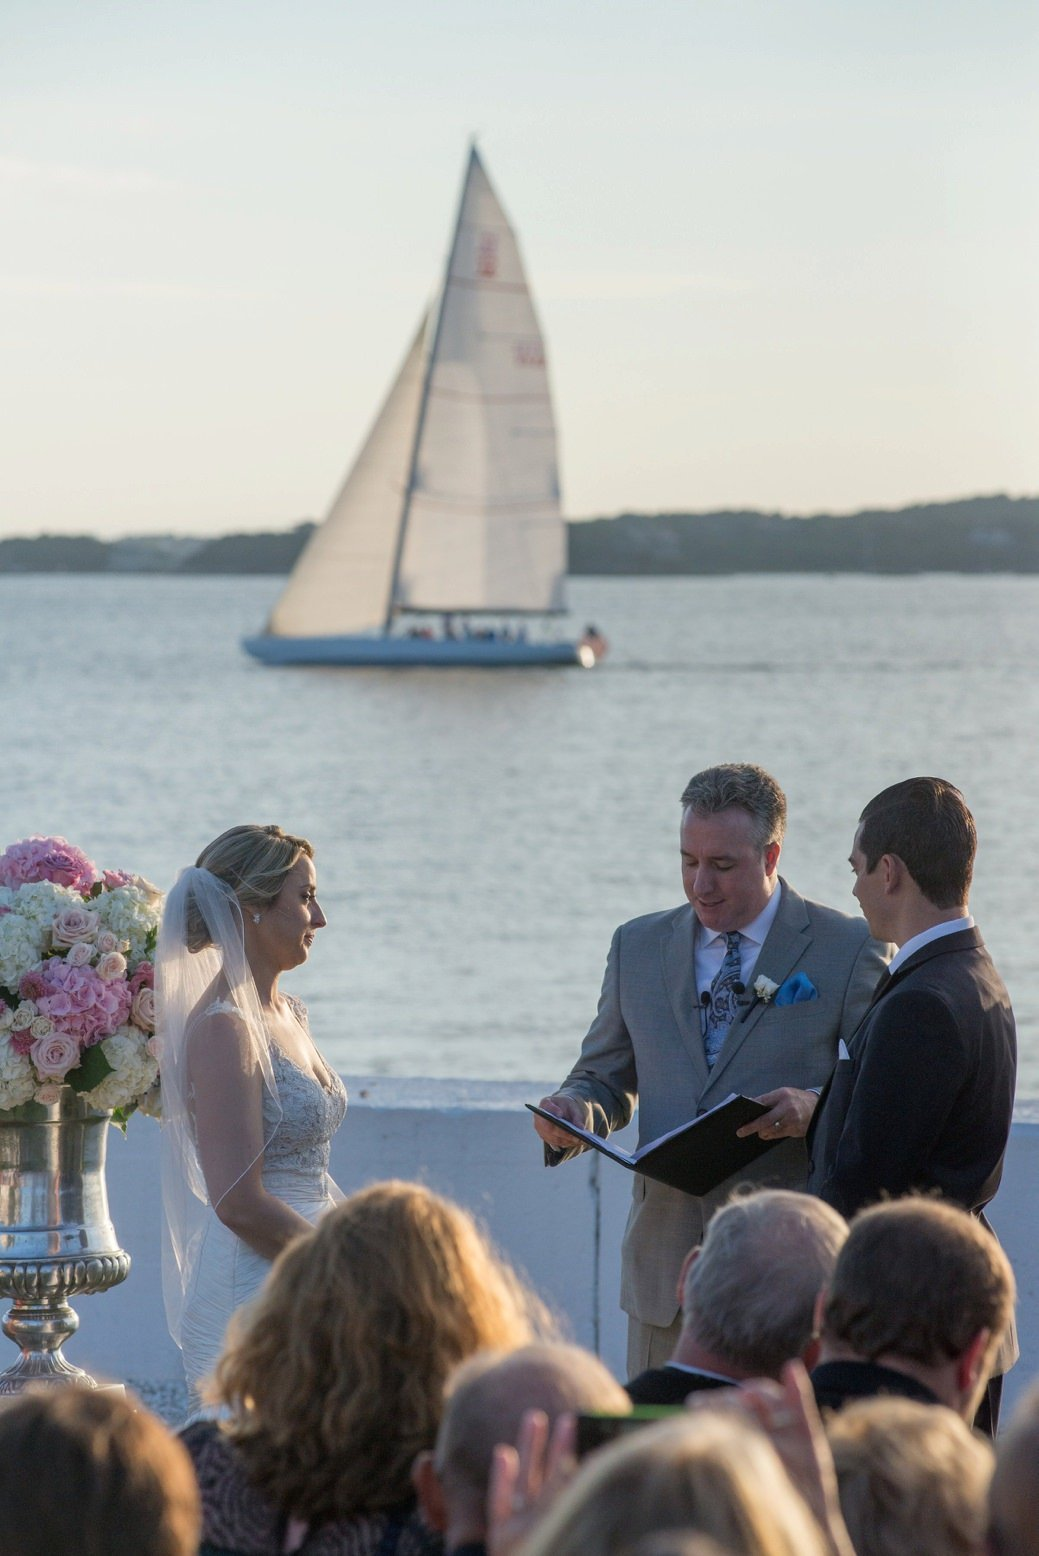 Wedding ceremony overlooking the ocean in Newport, RI